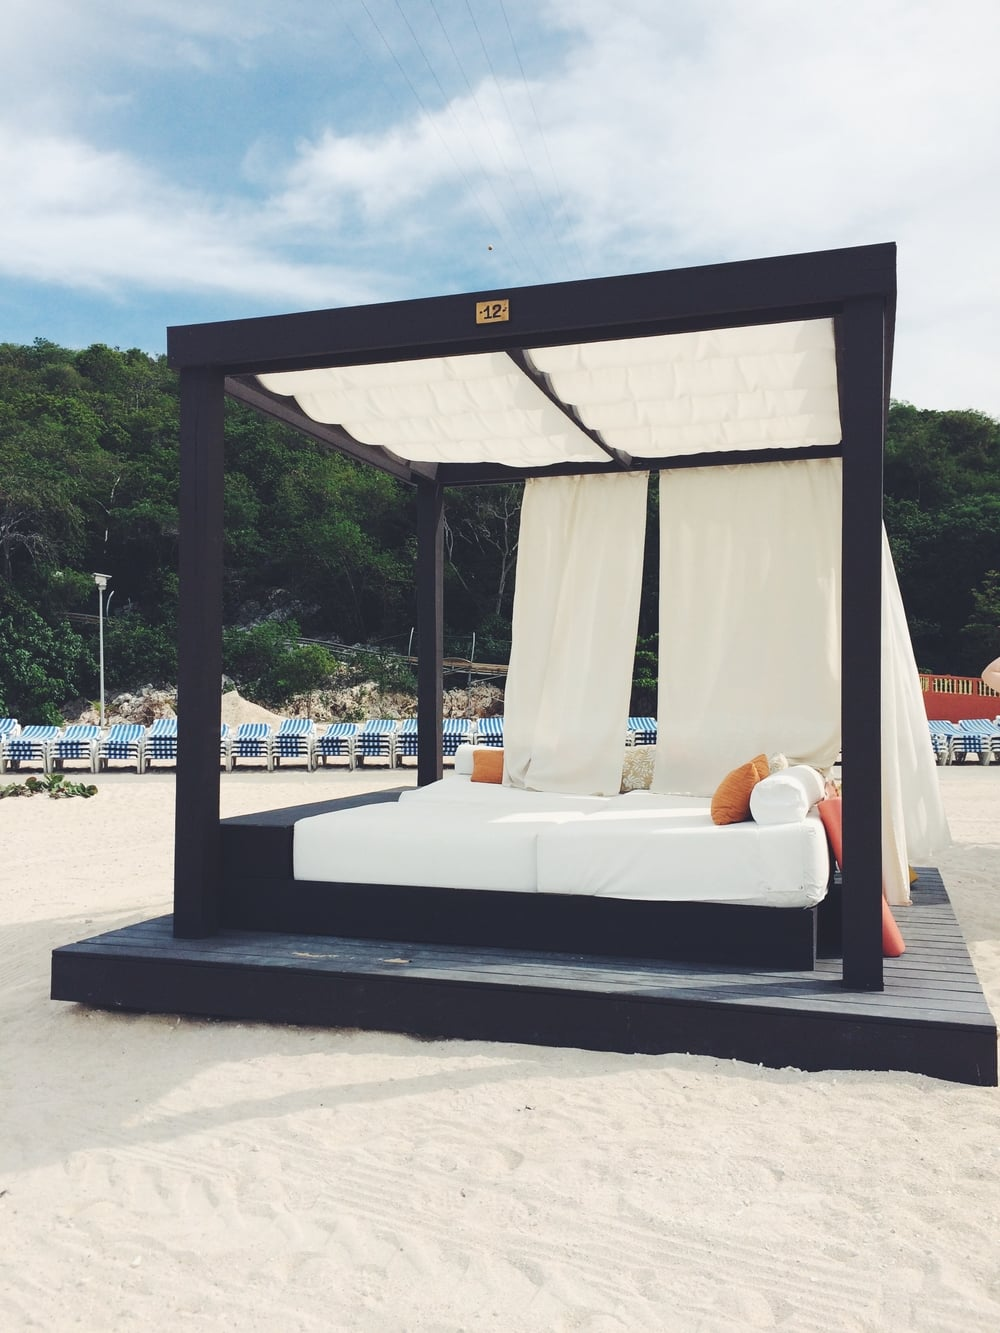 Our private beach bed in Labadee. We split it between all 6 of us, so worth the money!